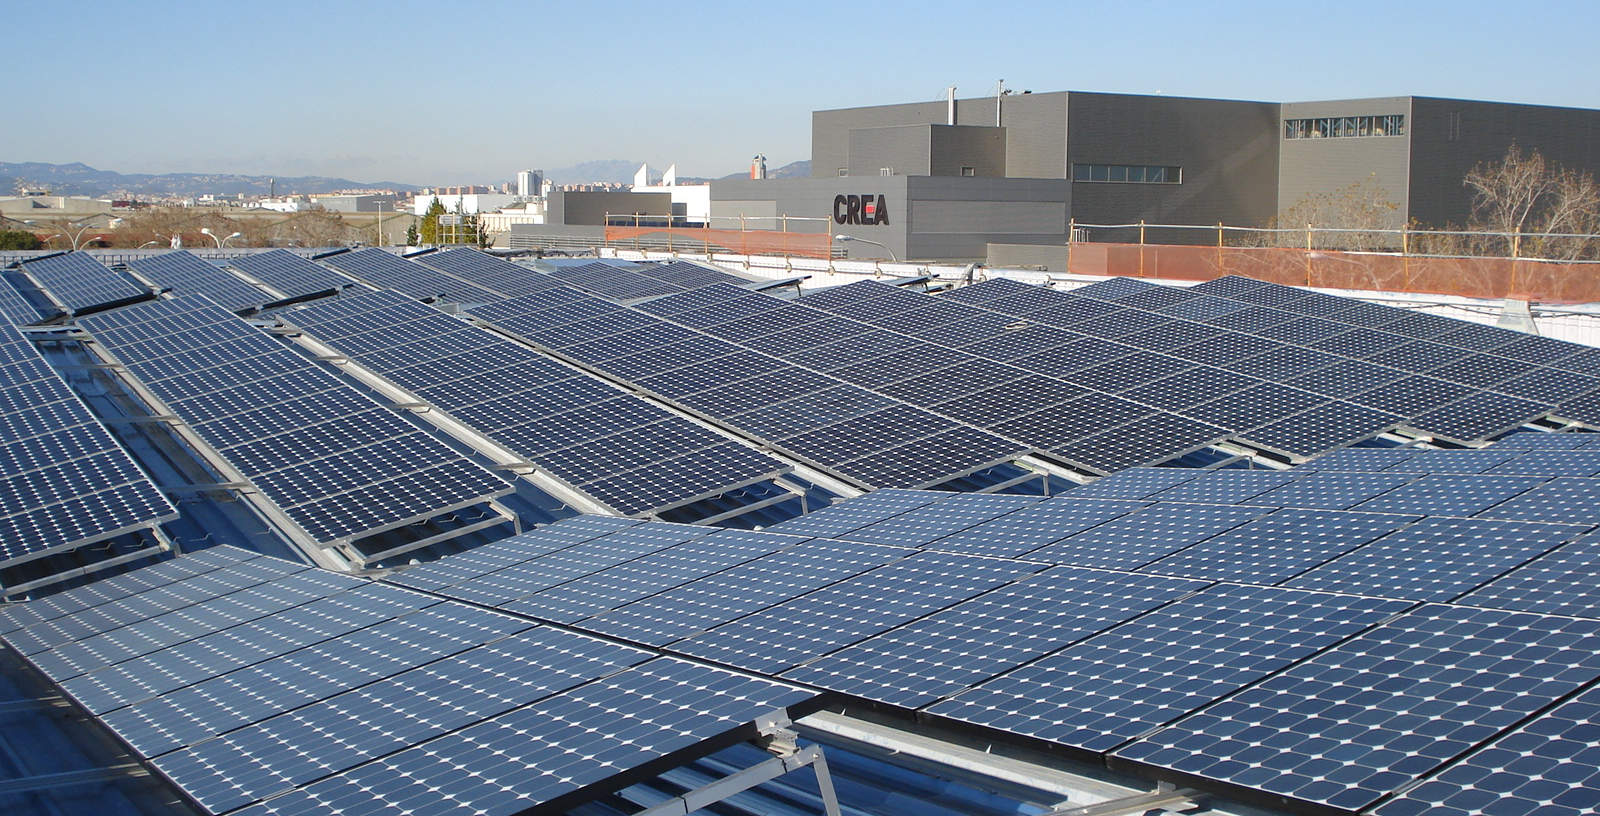 Technical_Due_Diligence_Rooftop_PV_Spain_Caja_Madrid_IDOM_002